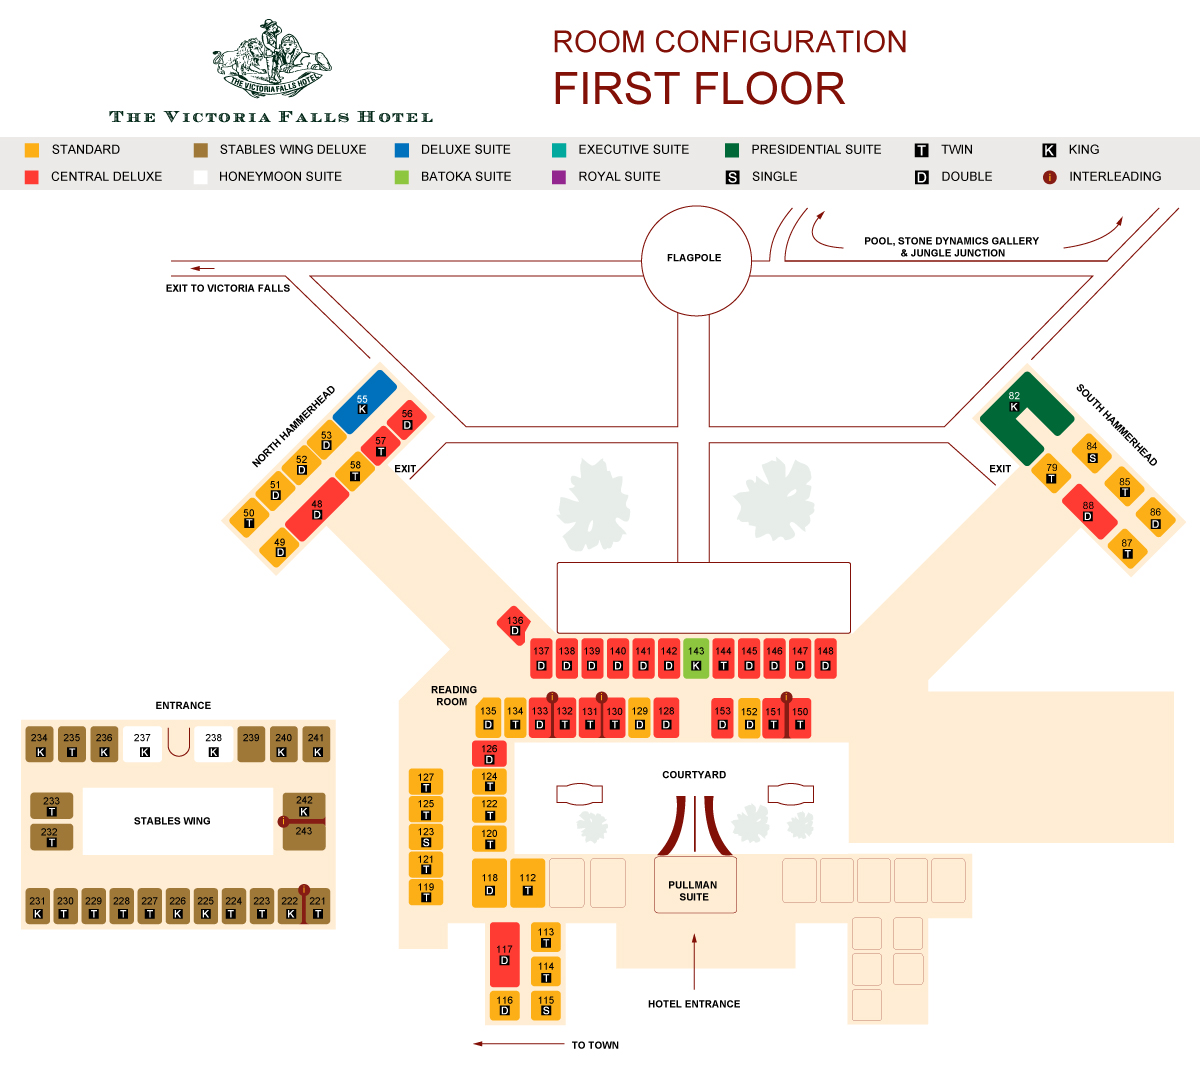 Victoria Falls Hotel first floor layout